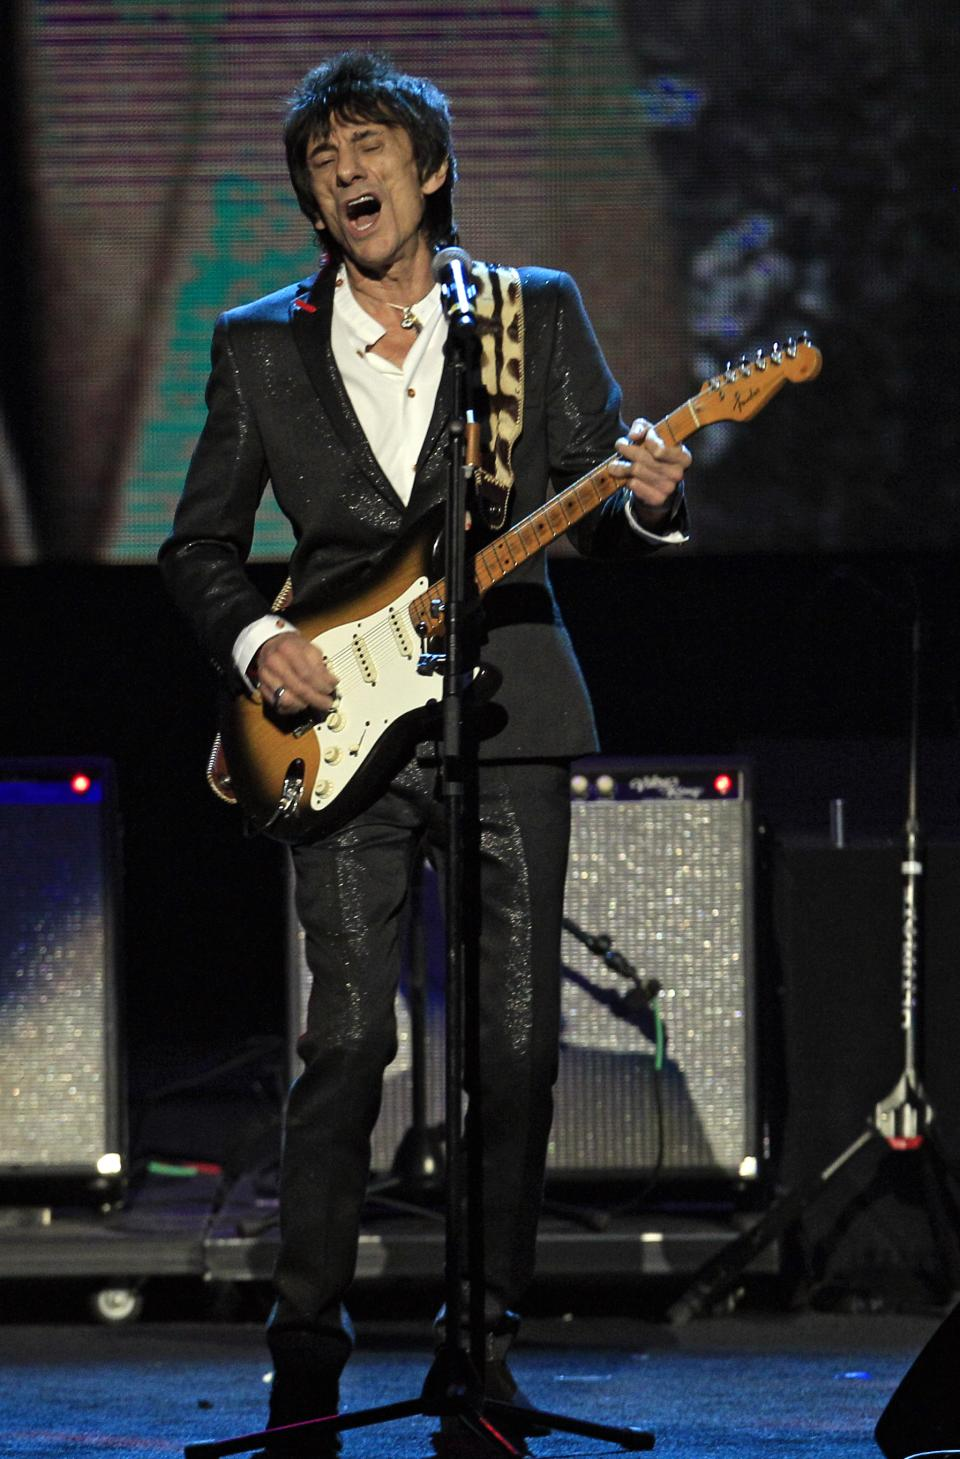 Rolling Stones guitarist Ron Wood performs after being inducted into the Rock and Roll Hall of Fame as a member of Faces Saturday, April 14, 2012, in Cleveland. (AP Photo/Tony Dejak)